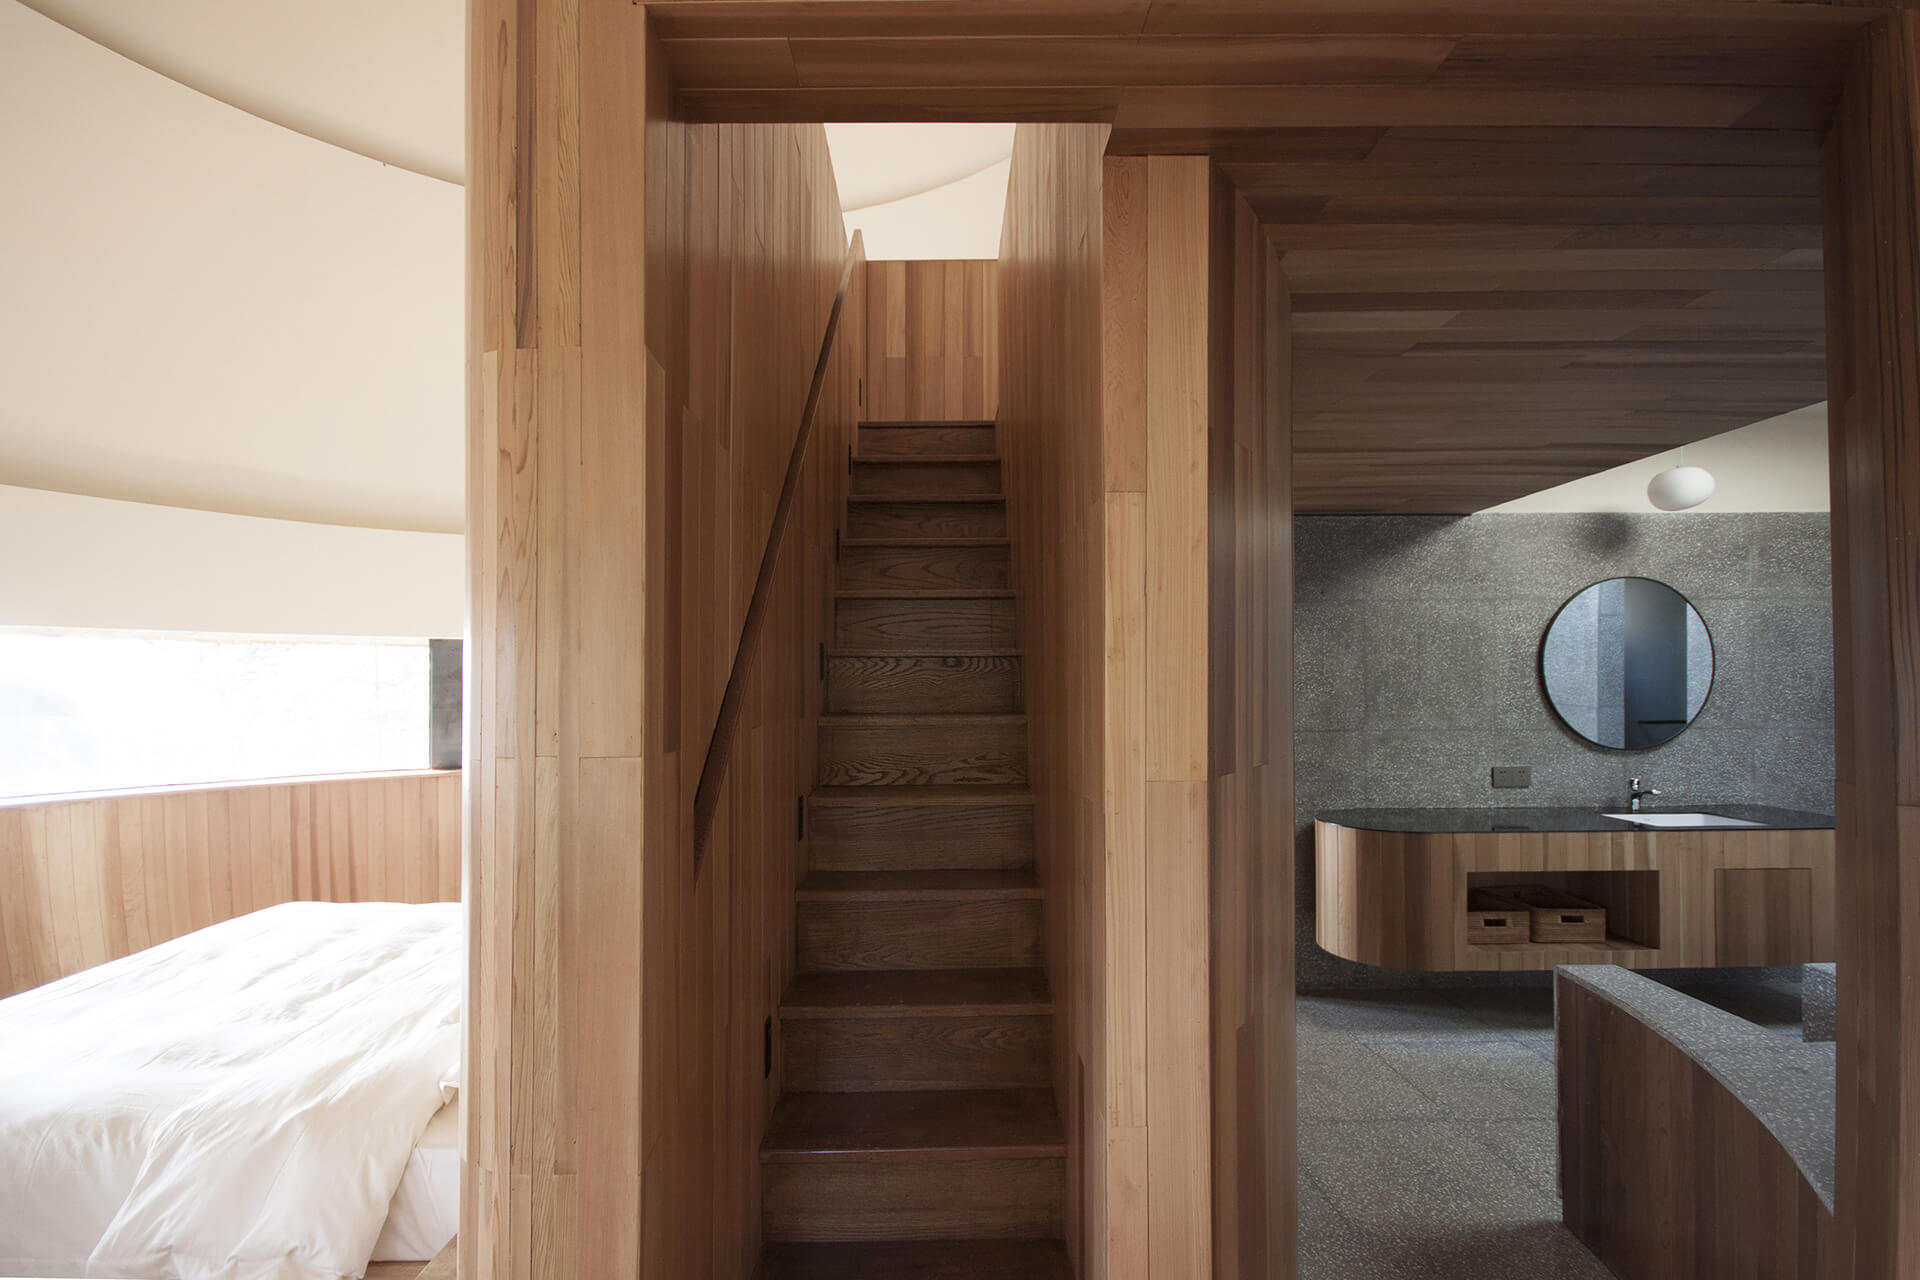 A compact wood finished staircase with a wall-recessed handrail leads to the Mushroom's upper loft |ZJJZ | China | STIRworld